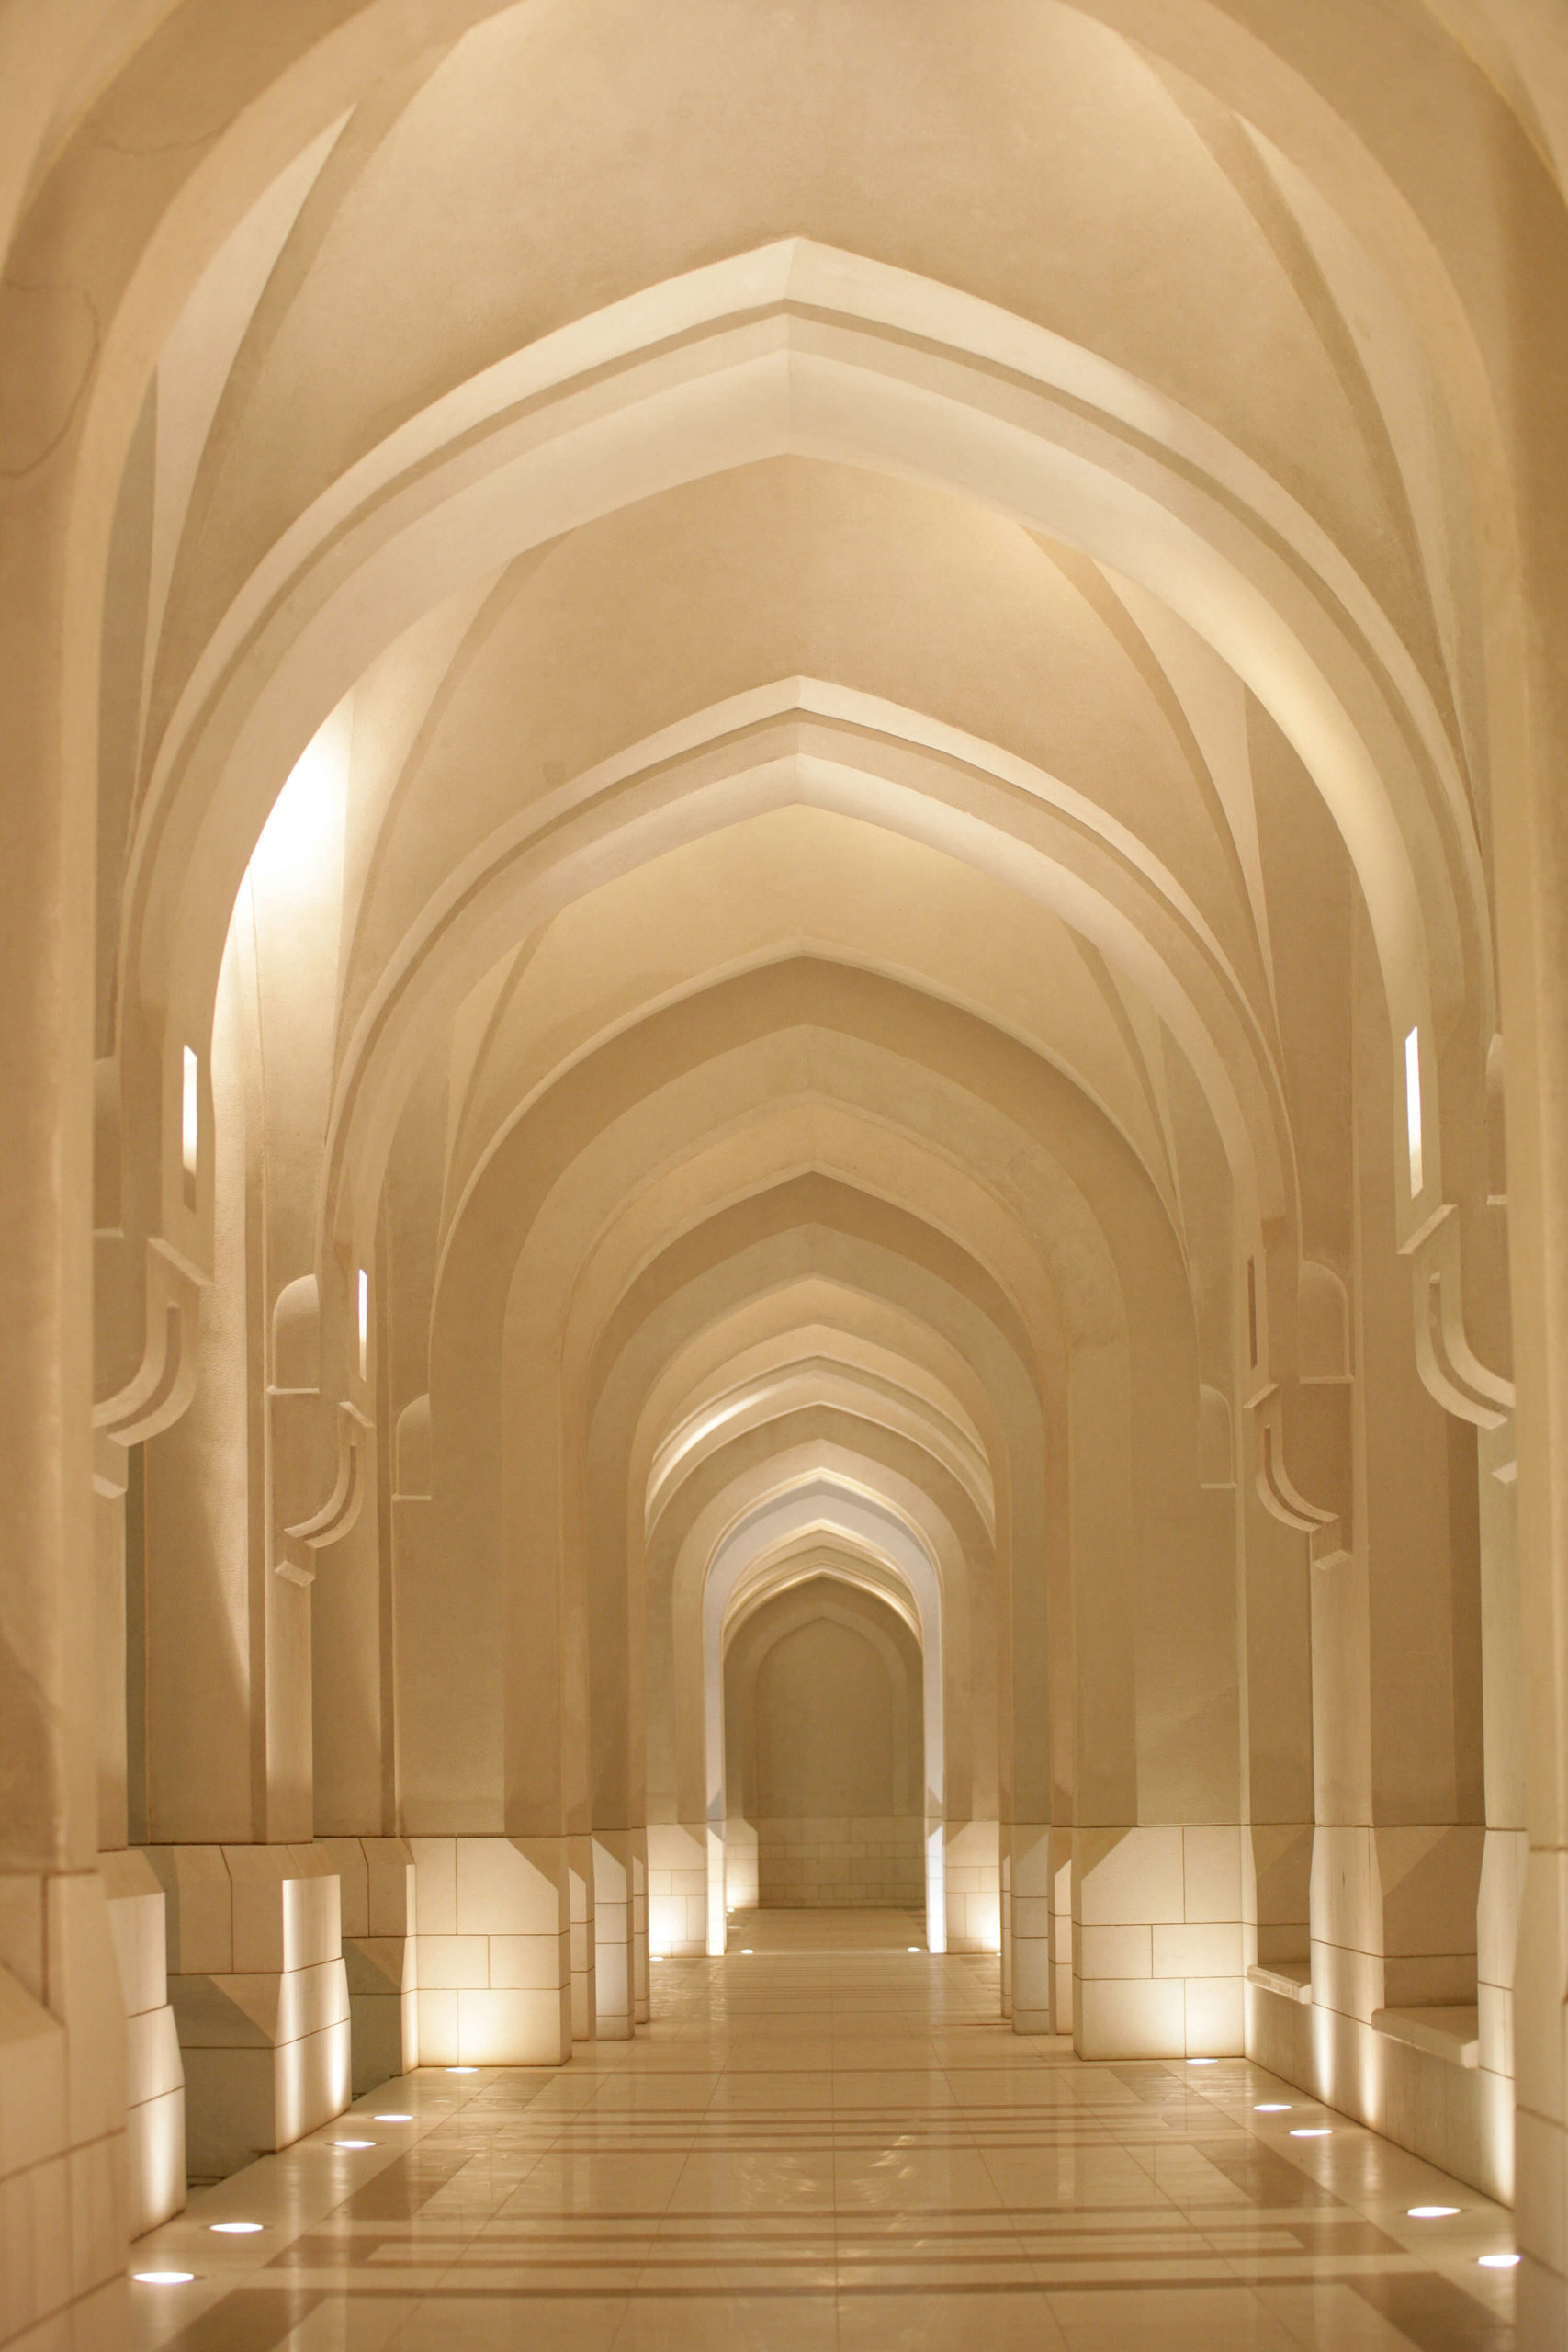 Sultan Qaboos Grand Mosque, Muscat